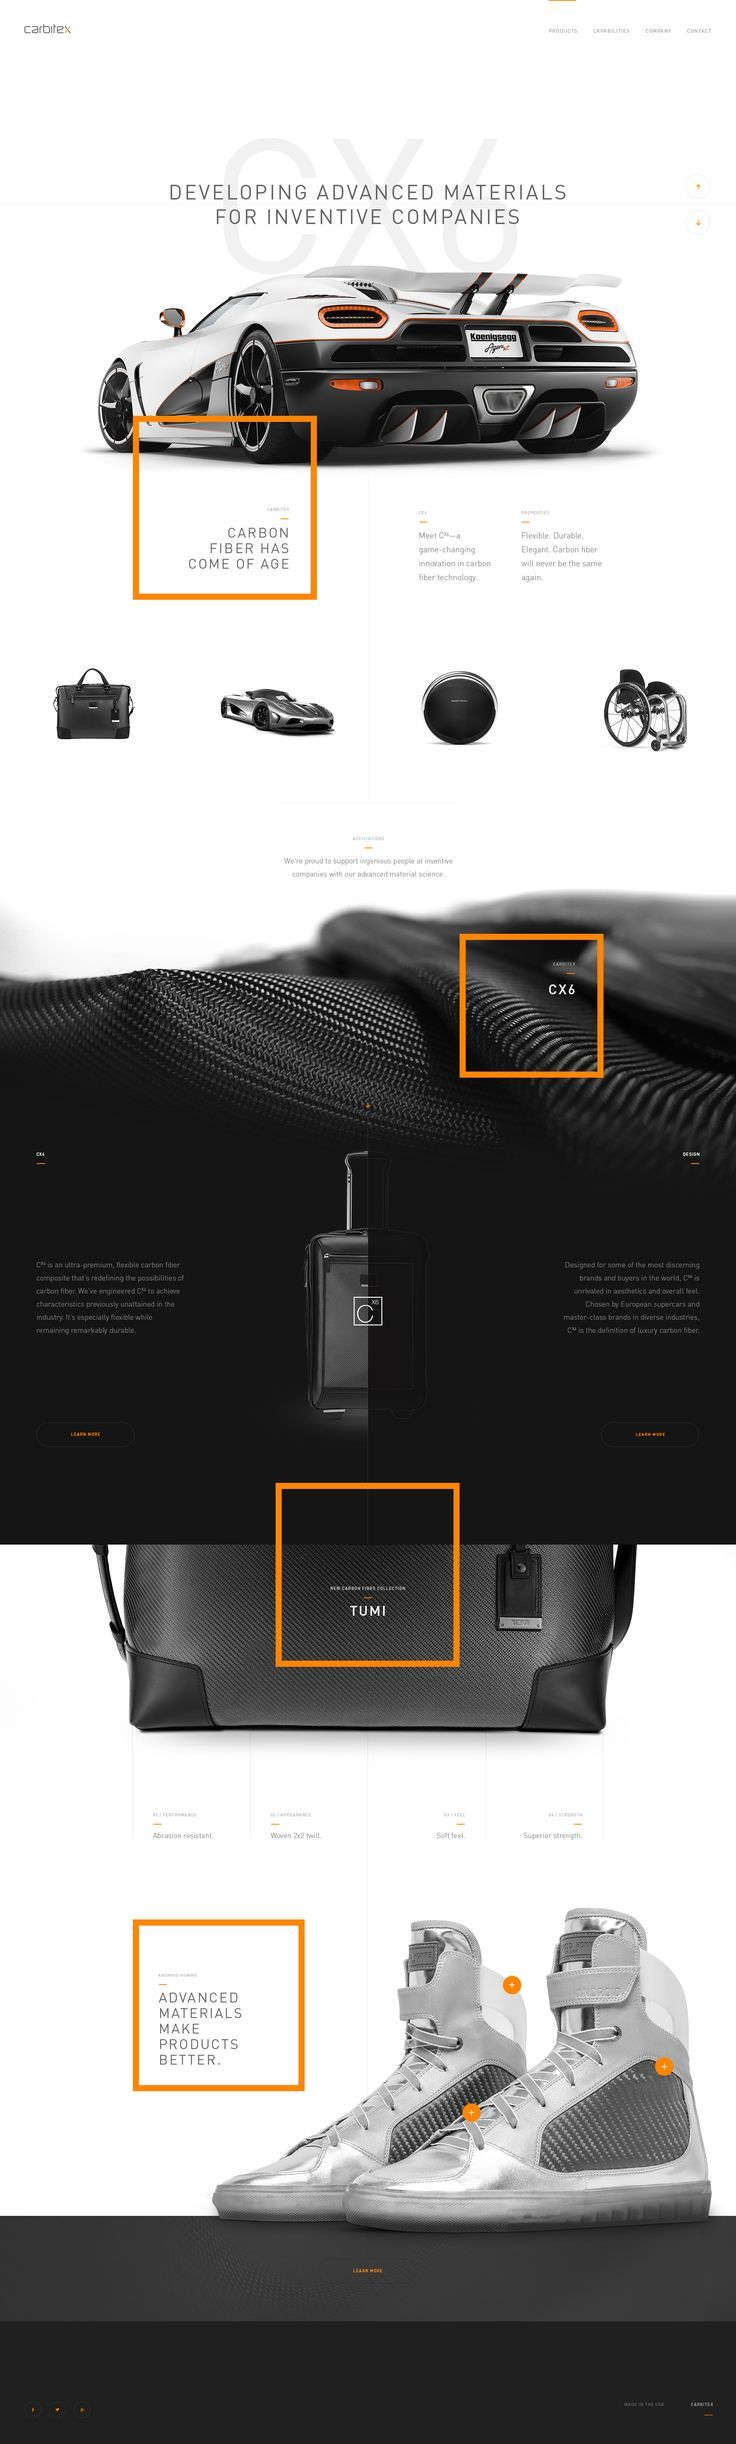 Wonderful things can happen when you combine great photography with simple and clean design. #WebDesign #Design